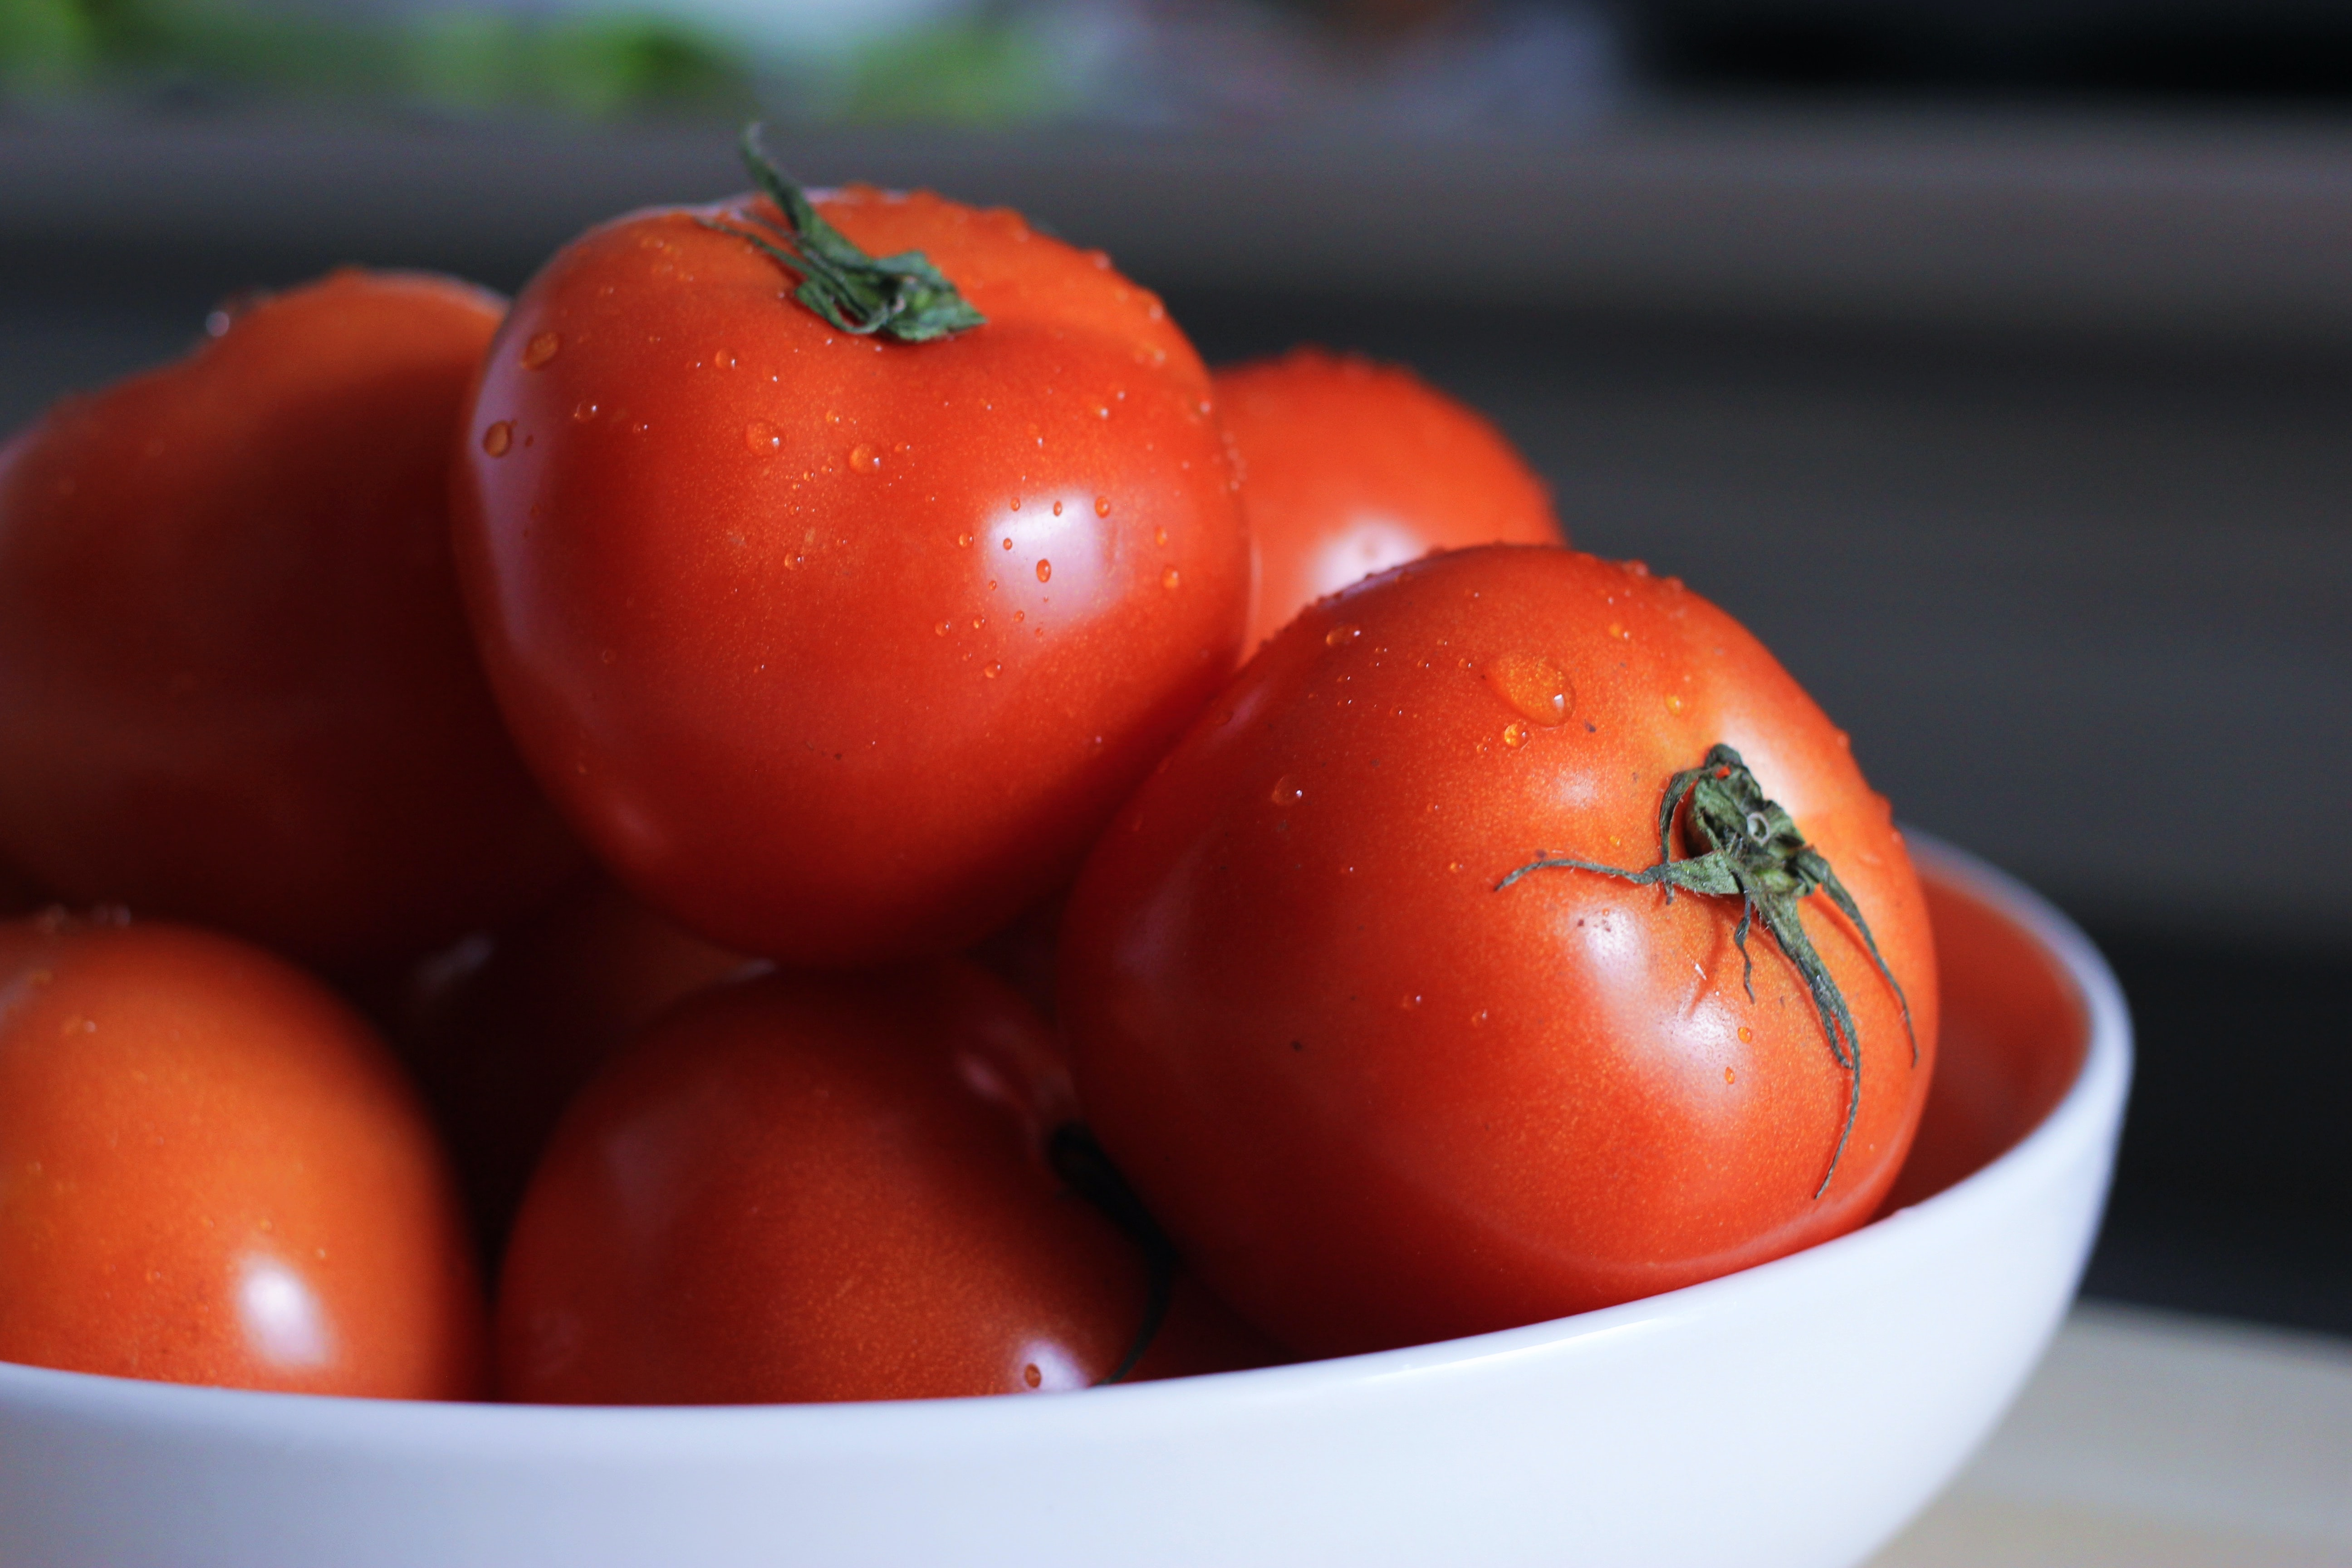 Freshly washed tomatoes in a white bowl ready to eat